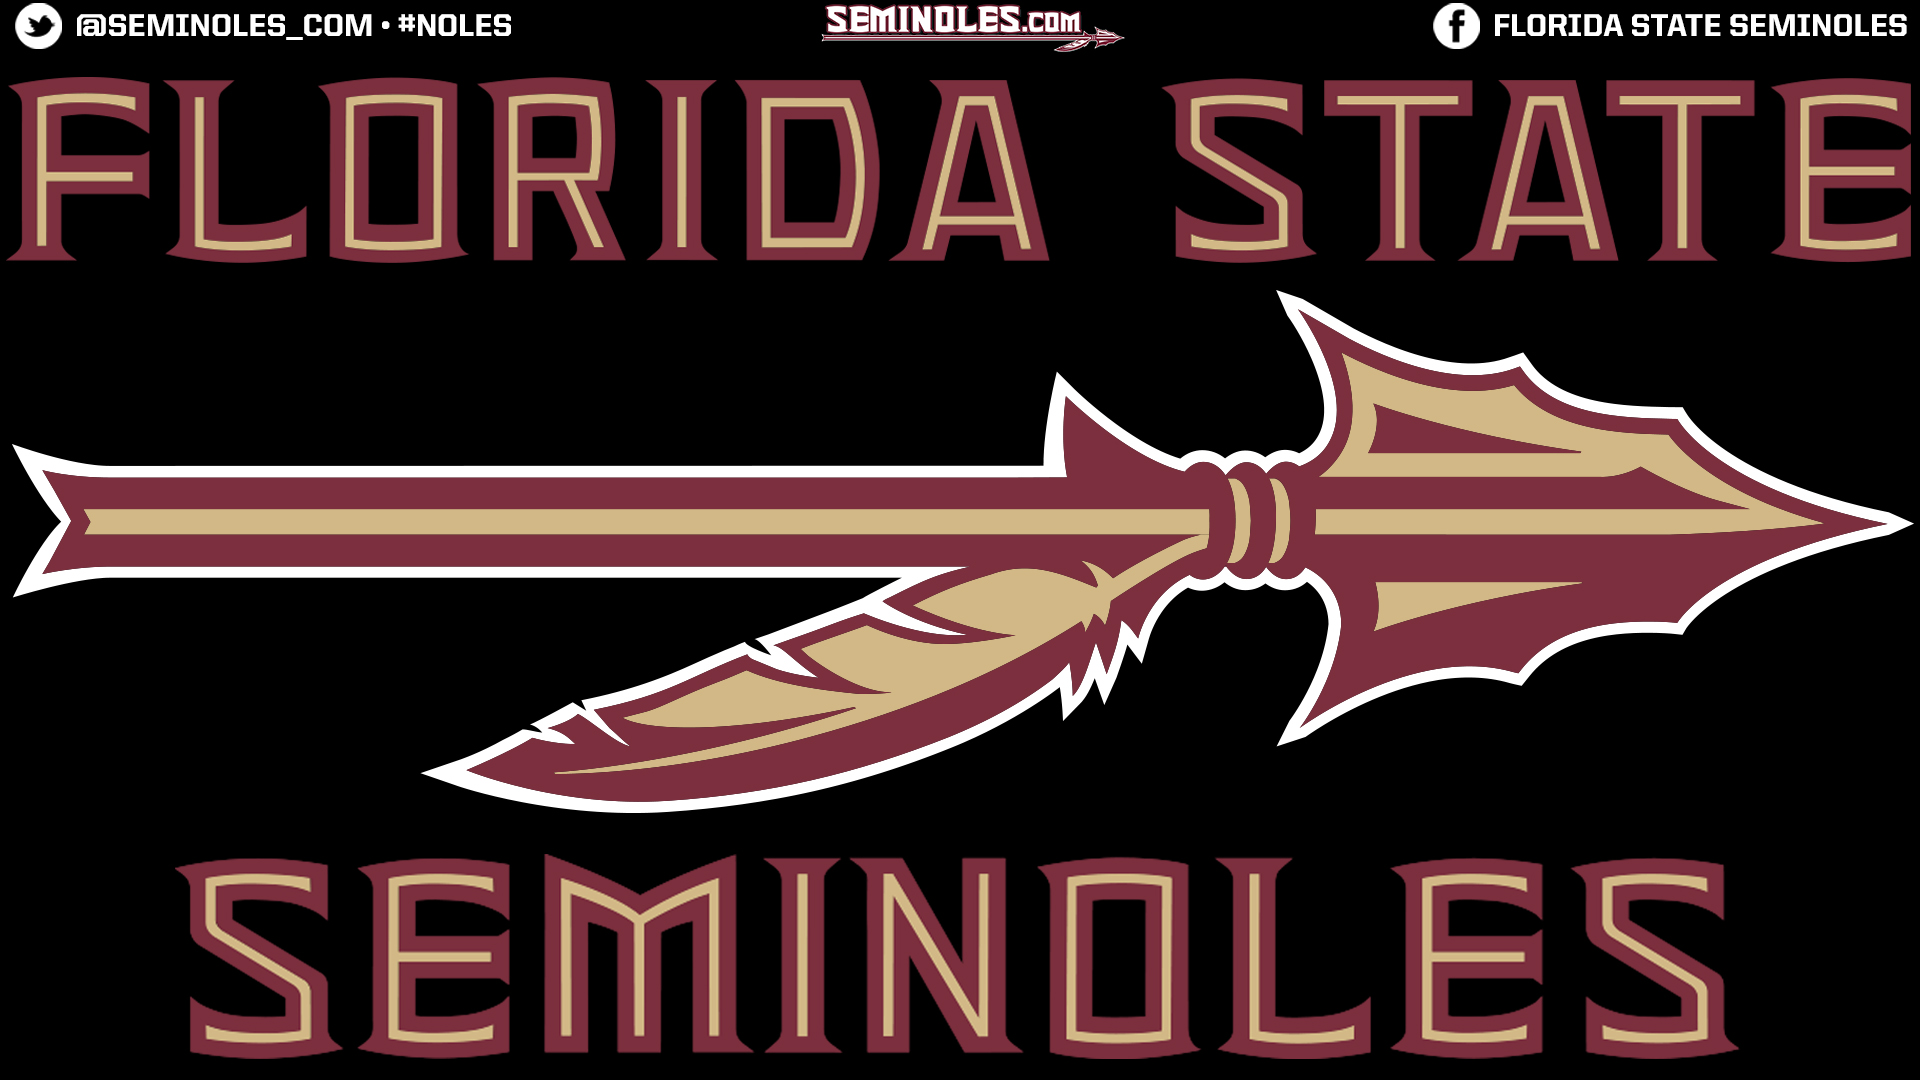 SEMINOLESCOM DESKTOP WALLPAPERS   Florida State Seminoles Official 1920x1080